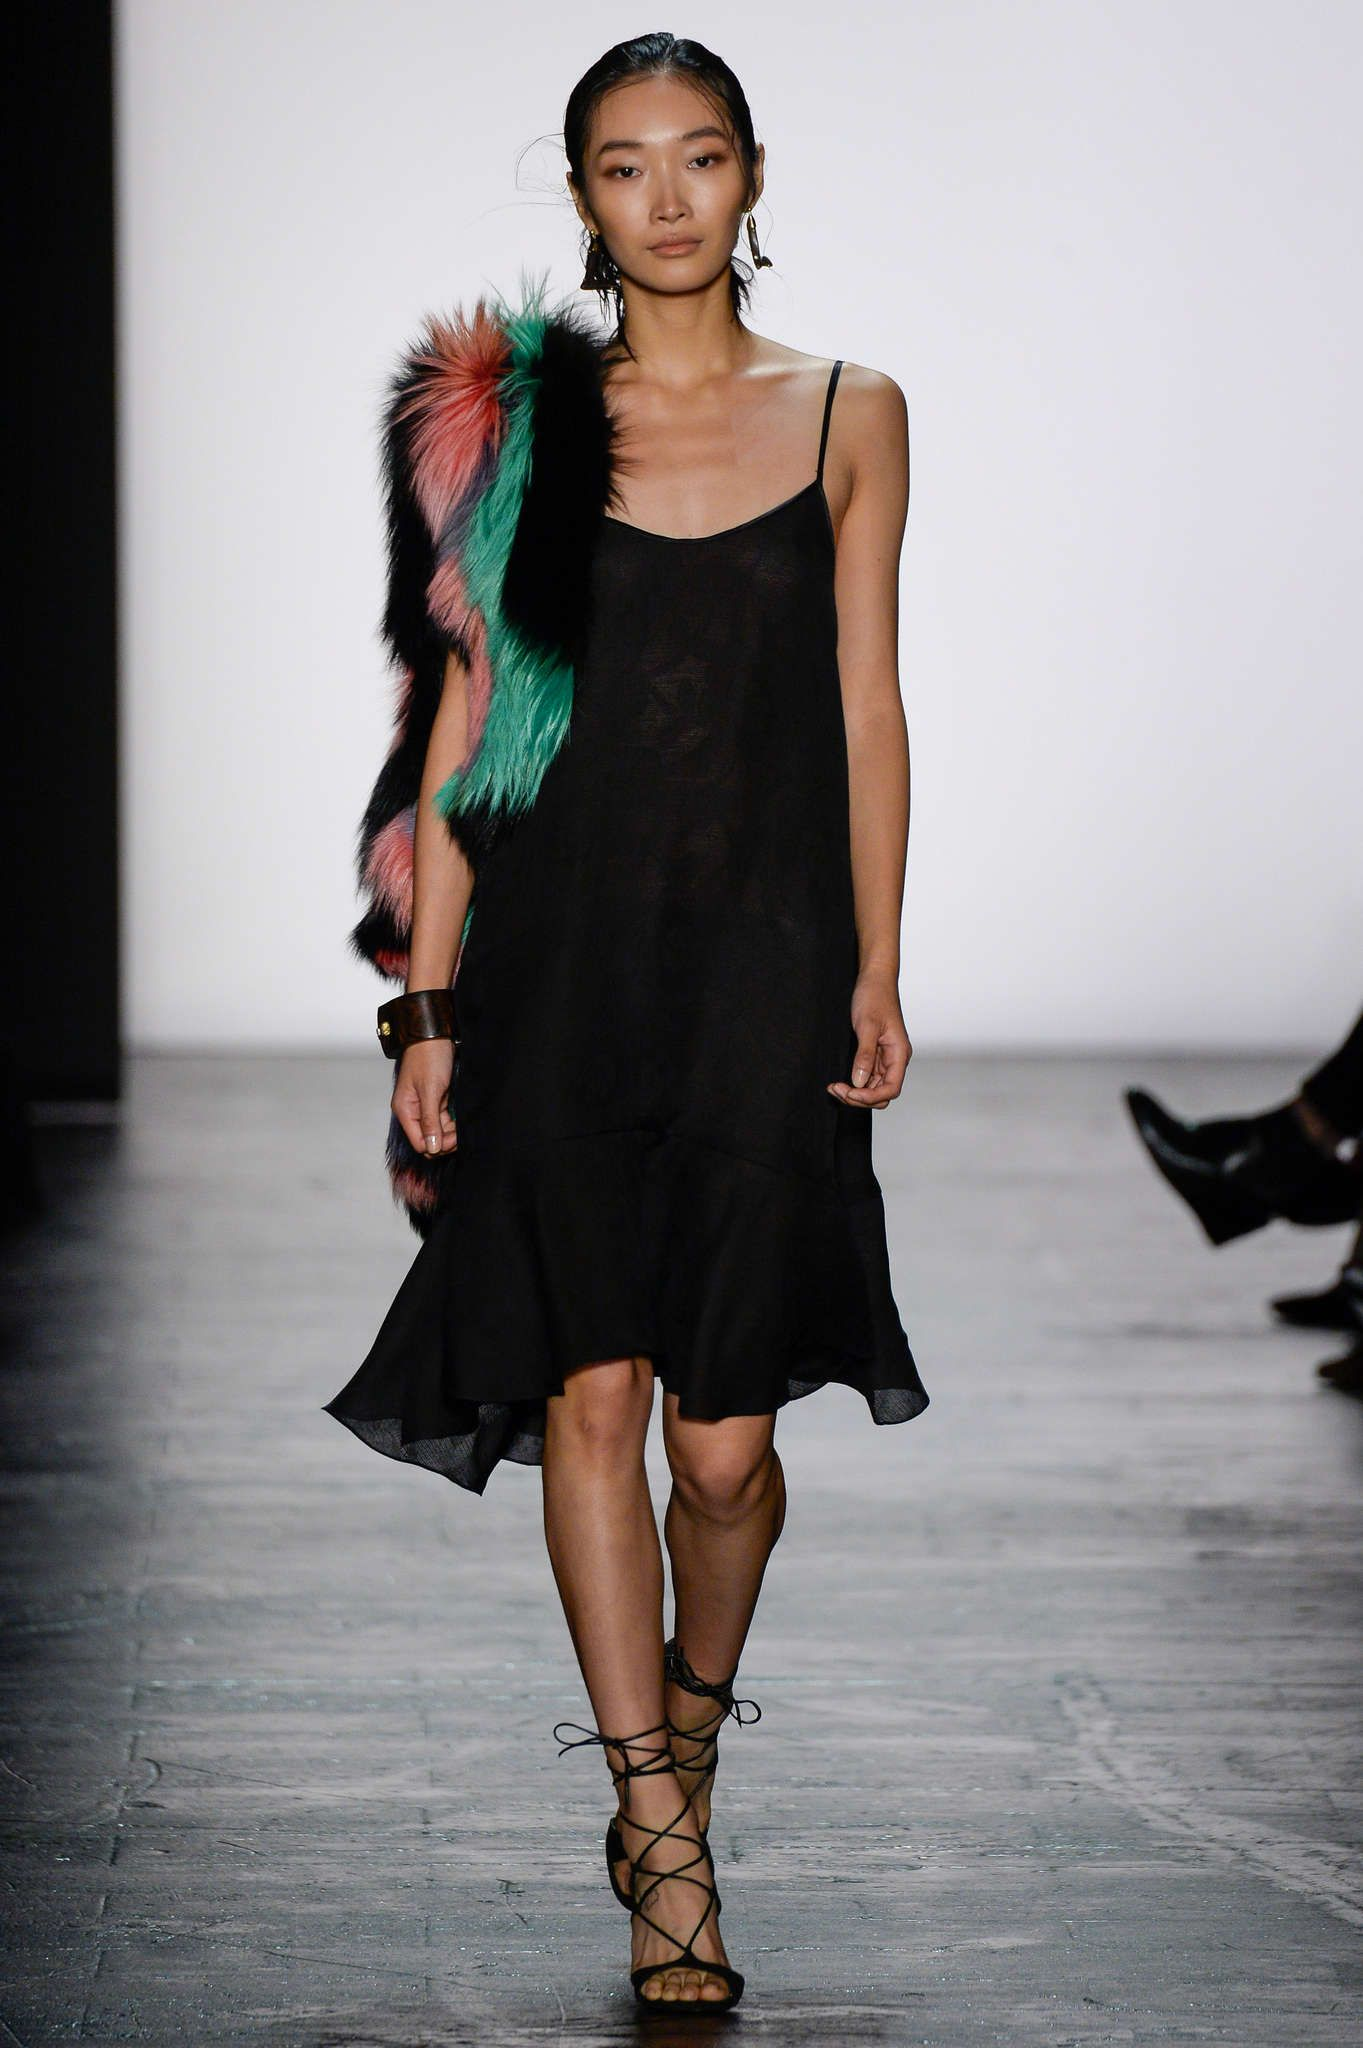 the coloured fur brings some 20's chic to this LBD